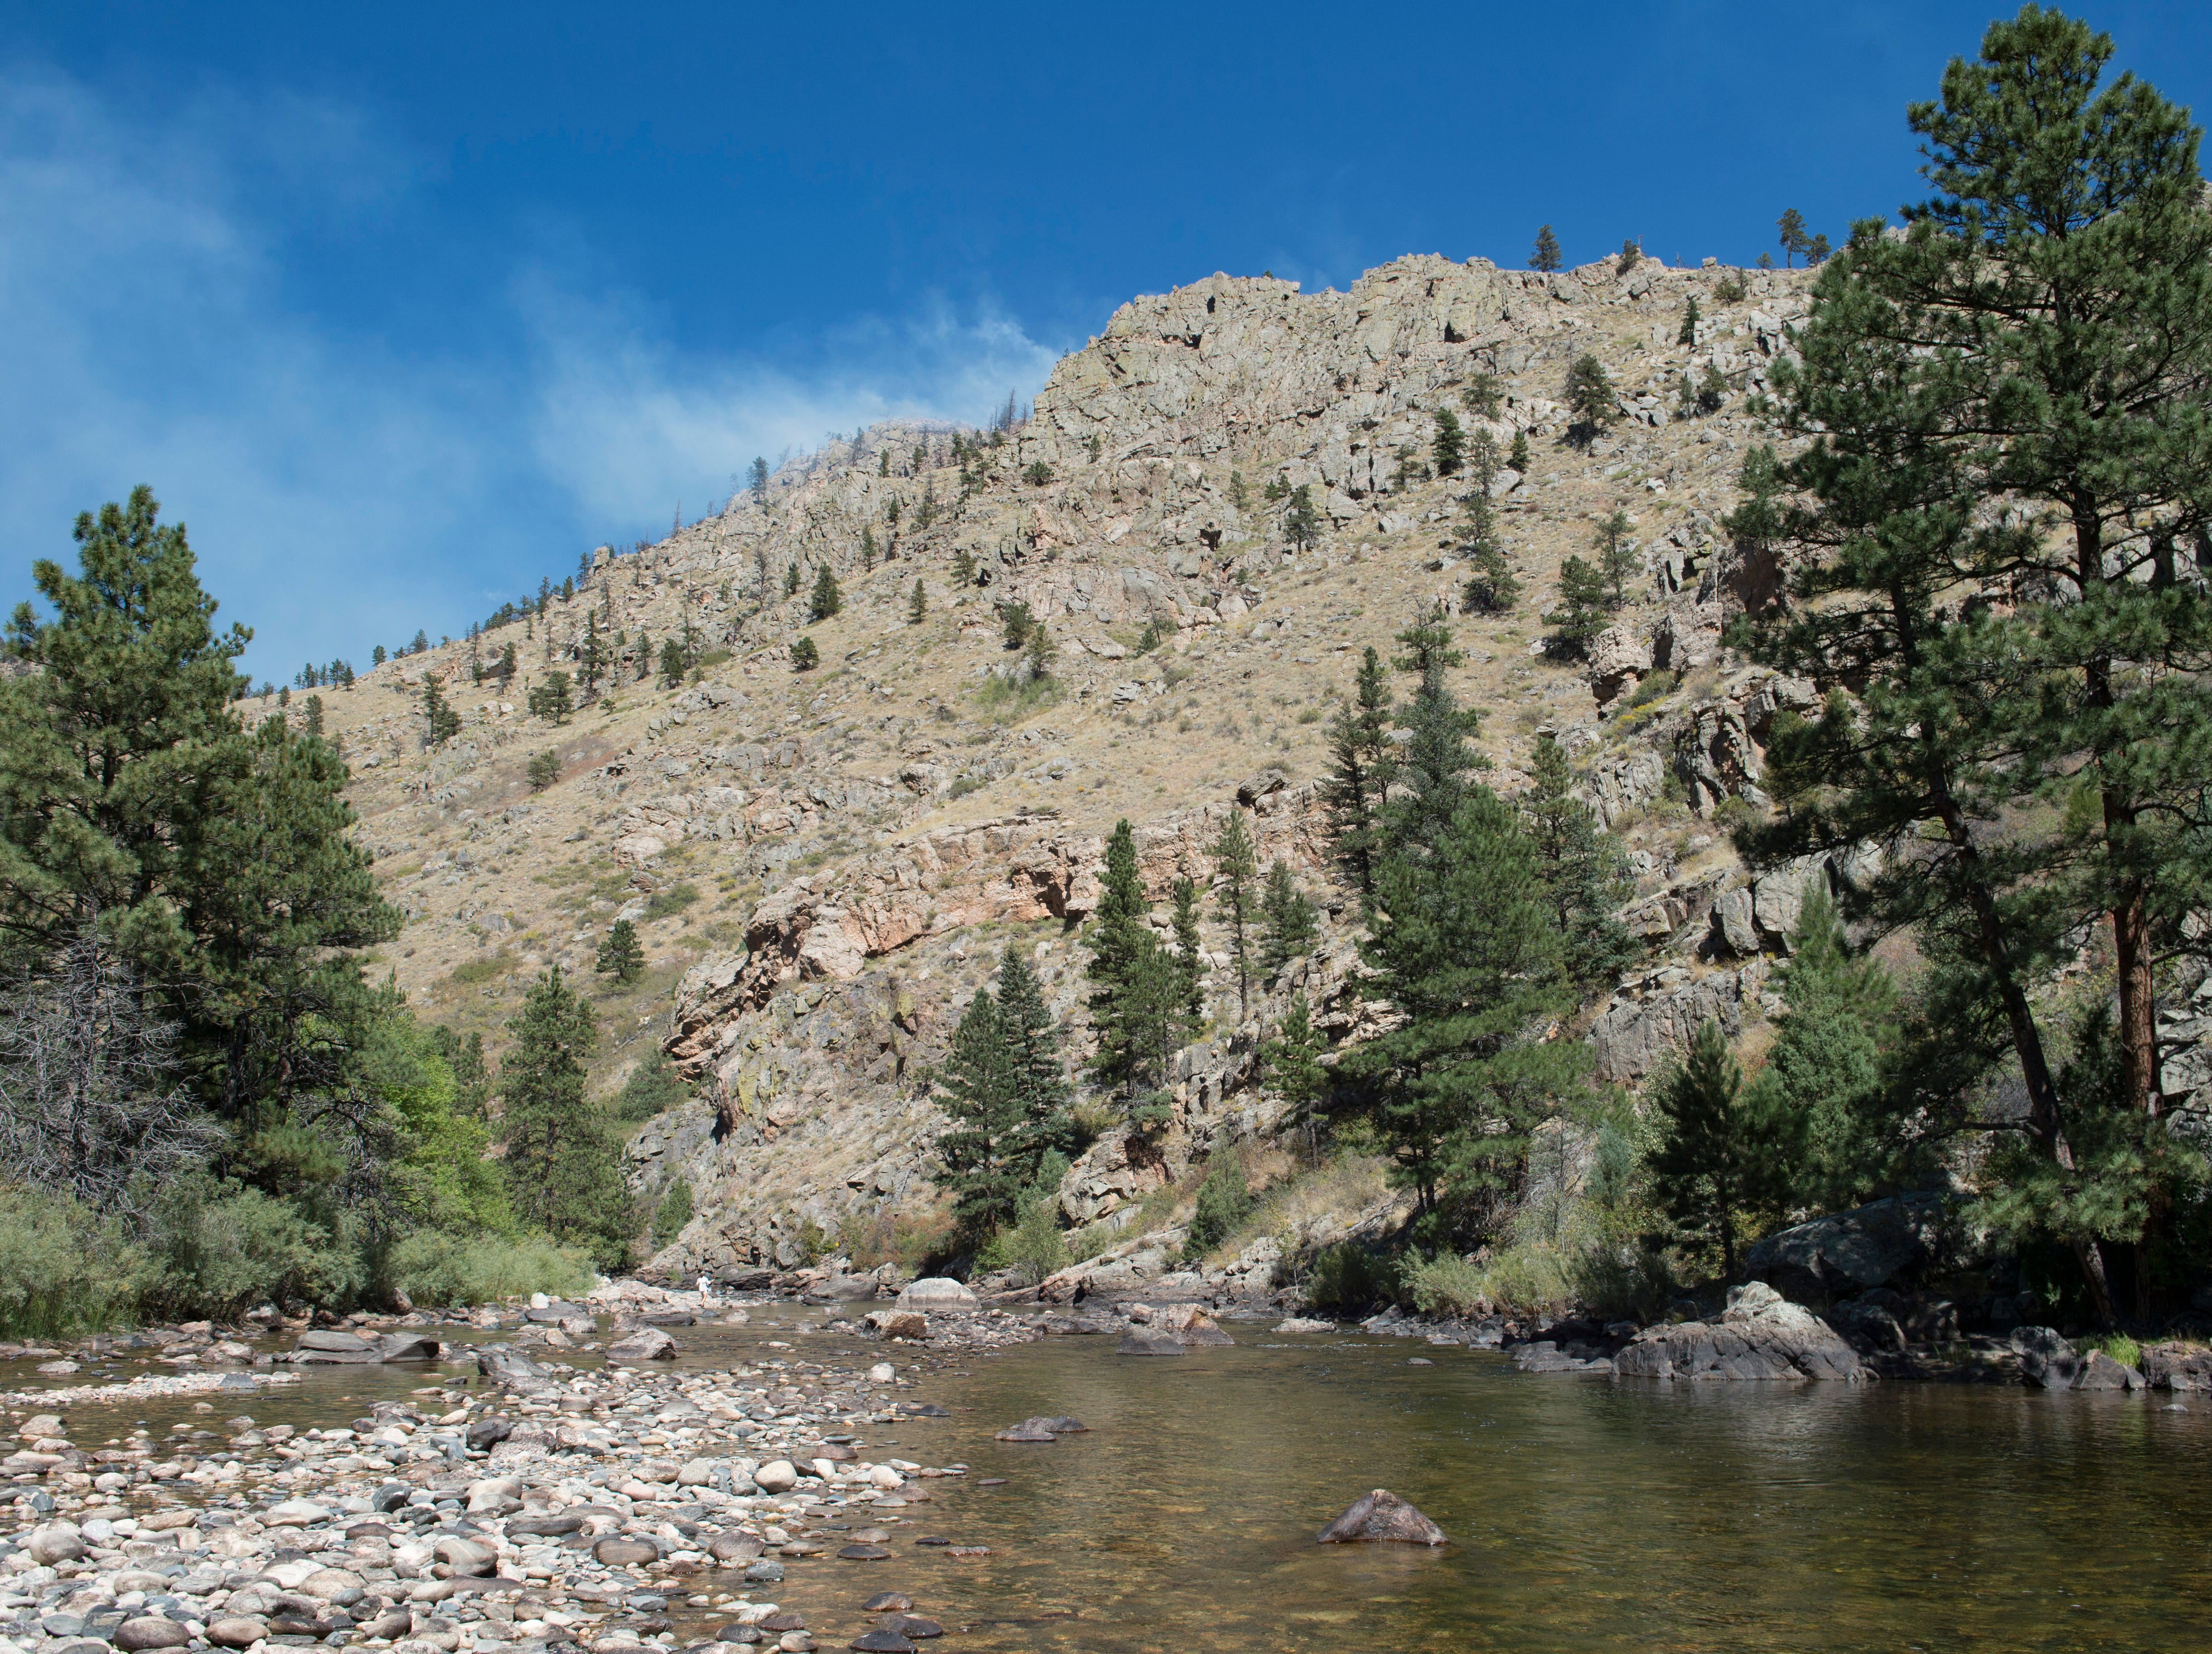 Smoke rises from a ridge above the Poudre River as a fire burns in Poudre Canyon west of Seaman Reservoir on Tuesday, September 12, 2018.